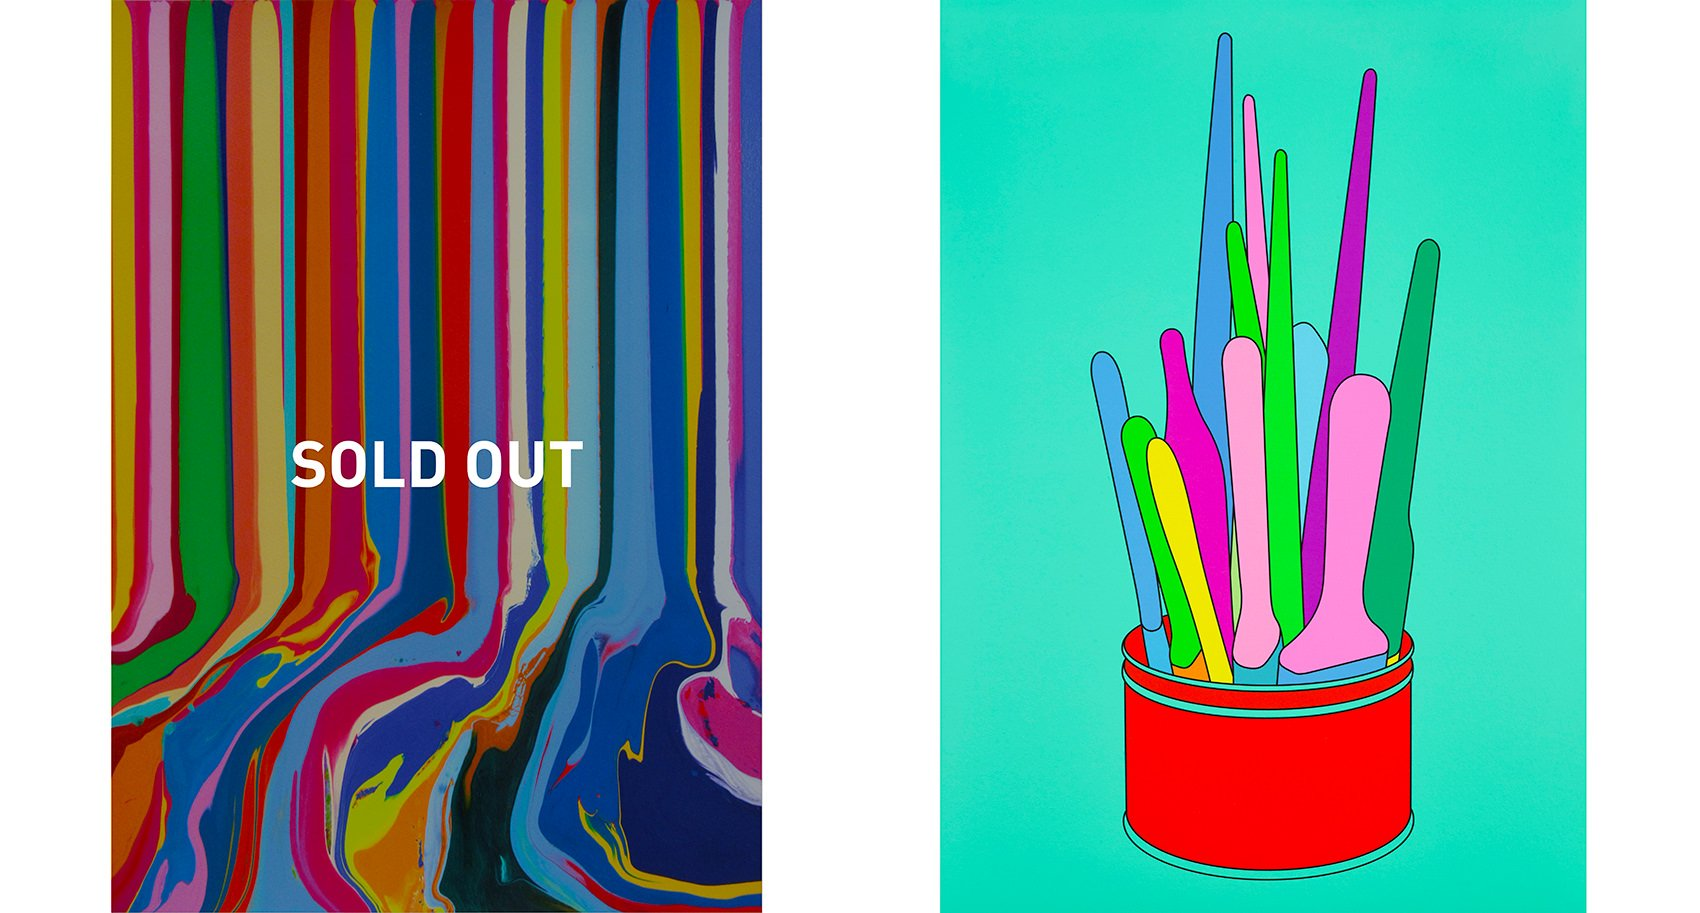 'Chromatastic Paintings in Hospitals' by Ian Davenport, 2016 and Savarin Can (Turquoise) by Michael Craig-Martin, 2018.